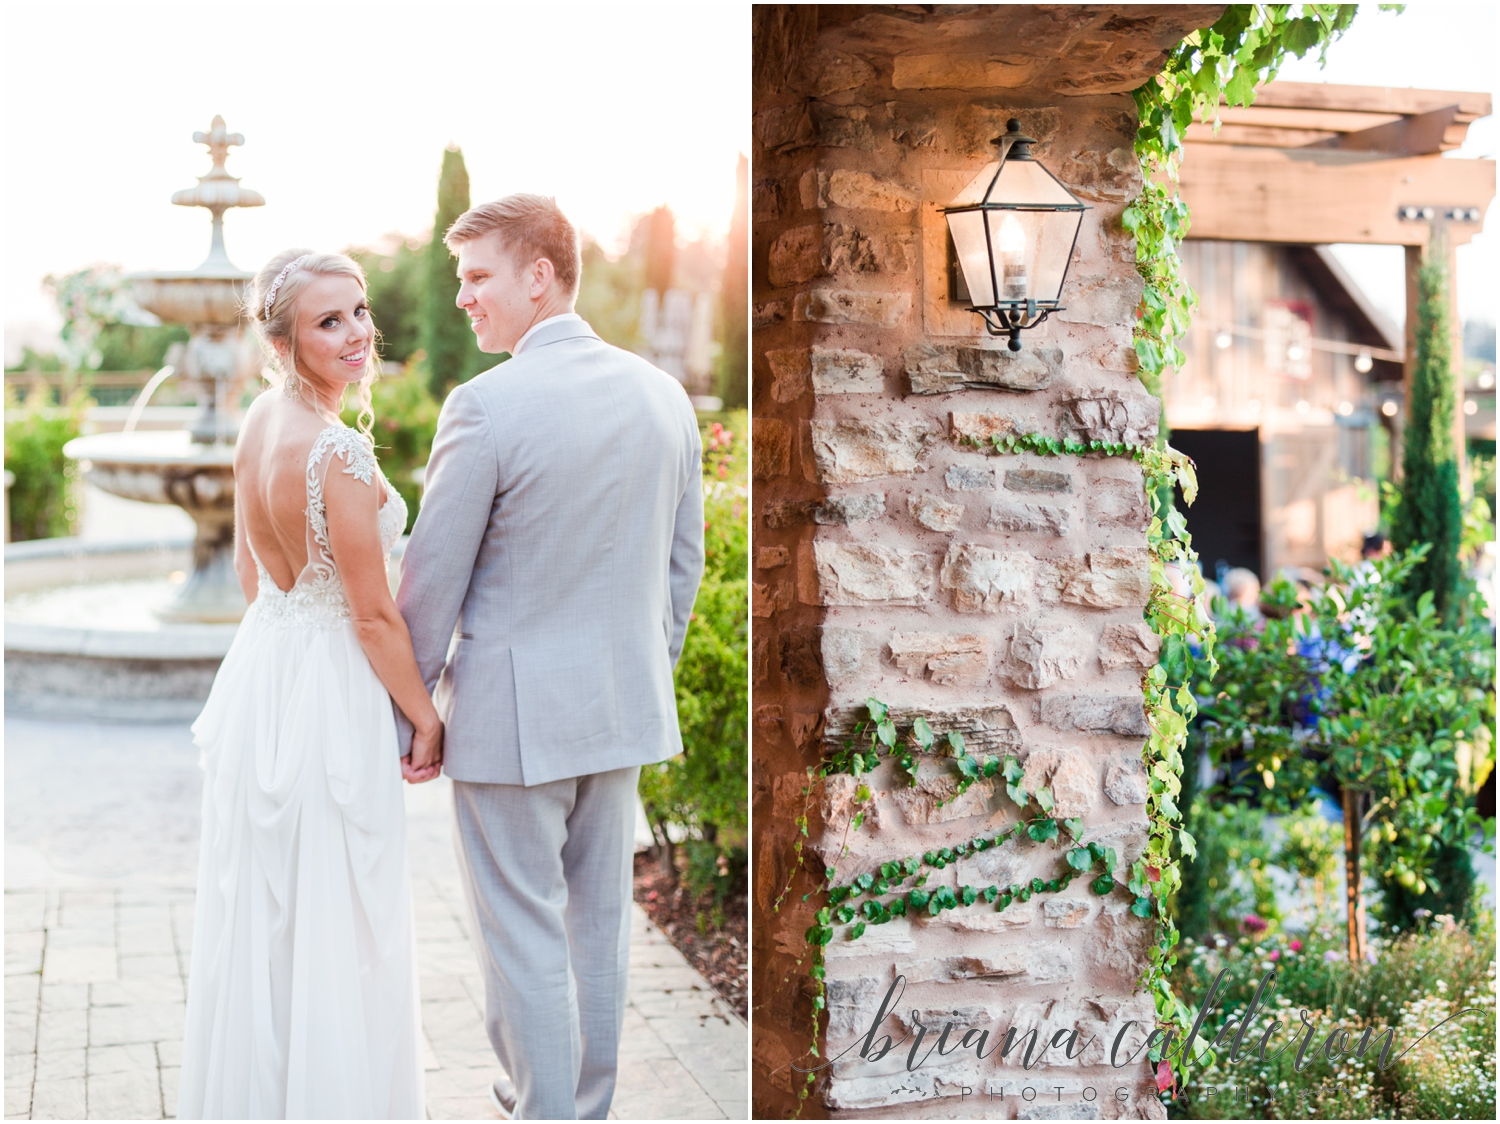 Regale Winery Wedding photos by Briana Calderon Photography_0636.jpg